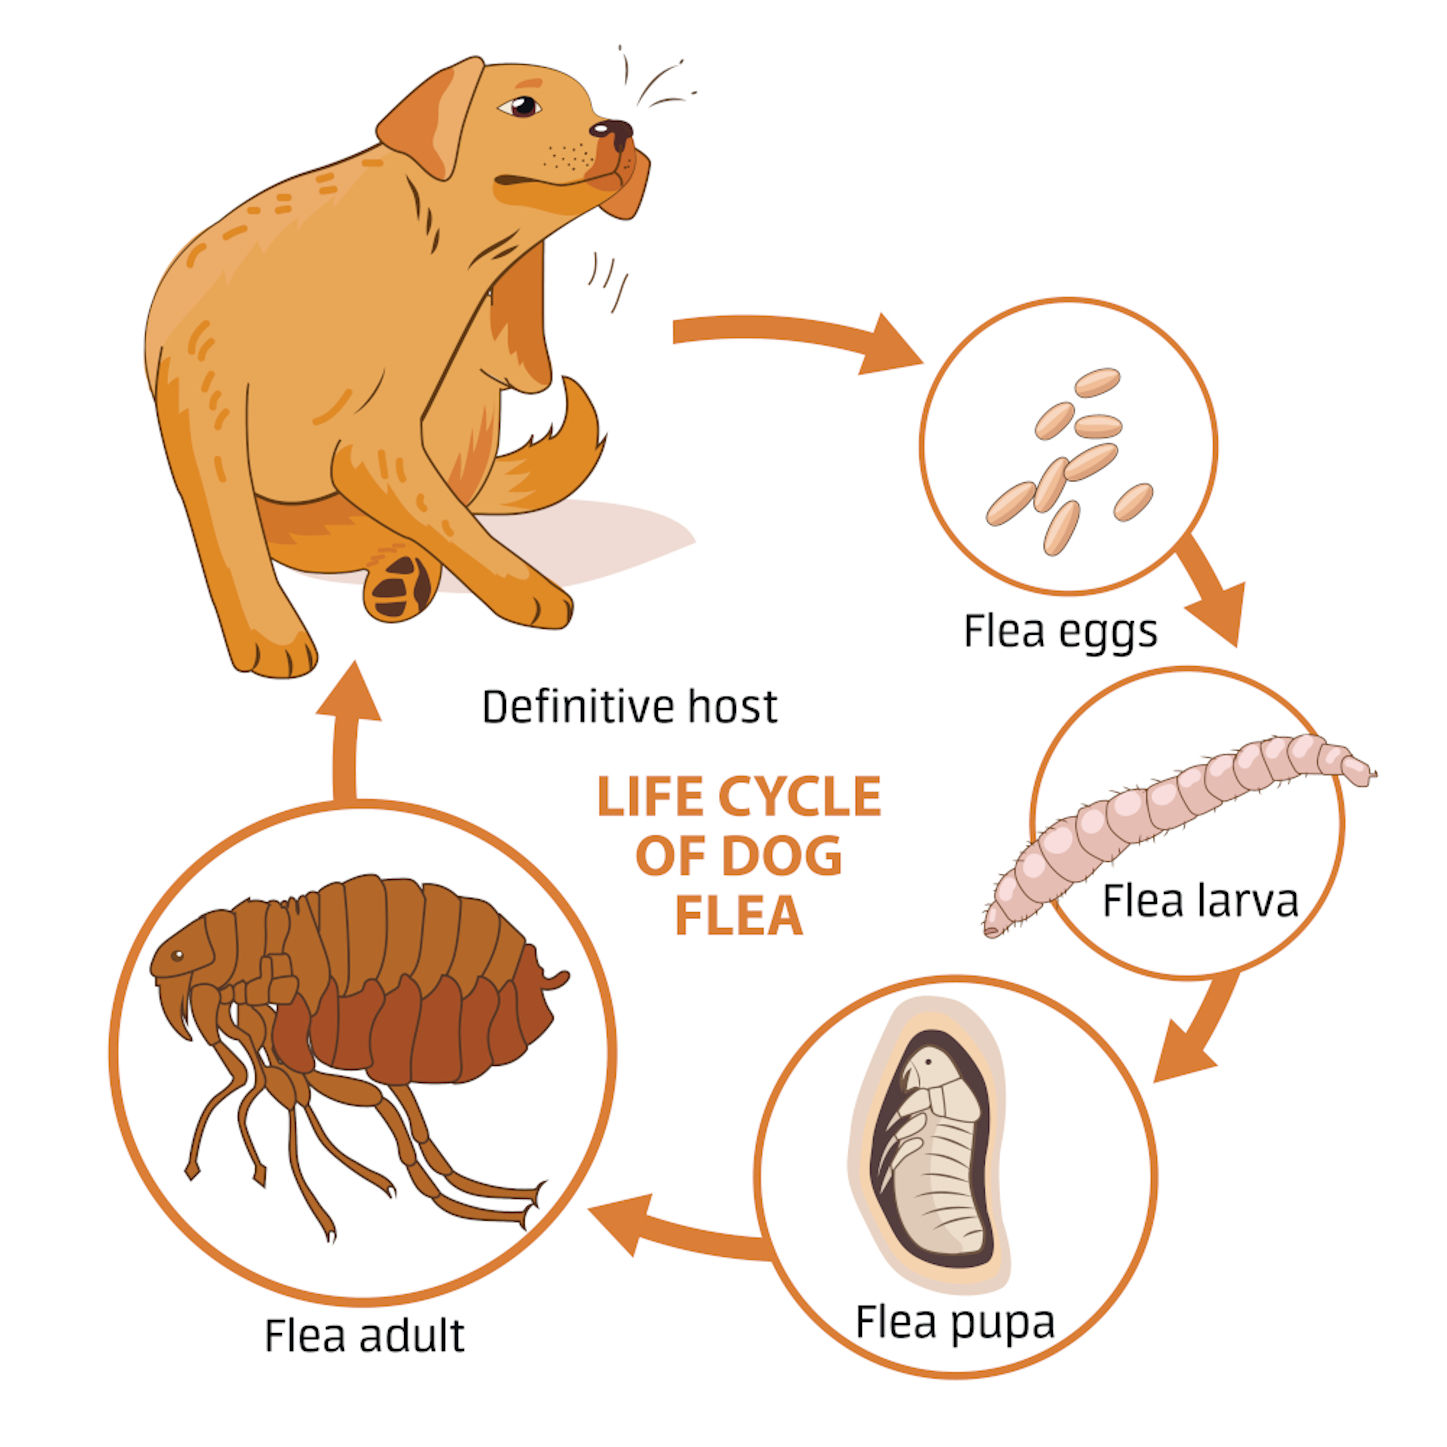 16 FAQ's about Fleas, Ticks, and Flea Infestations in Dogs